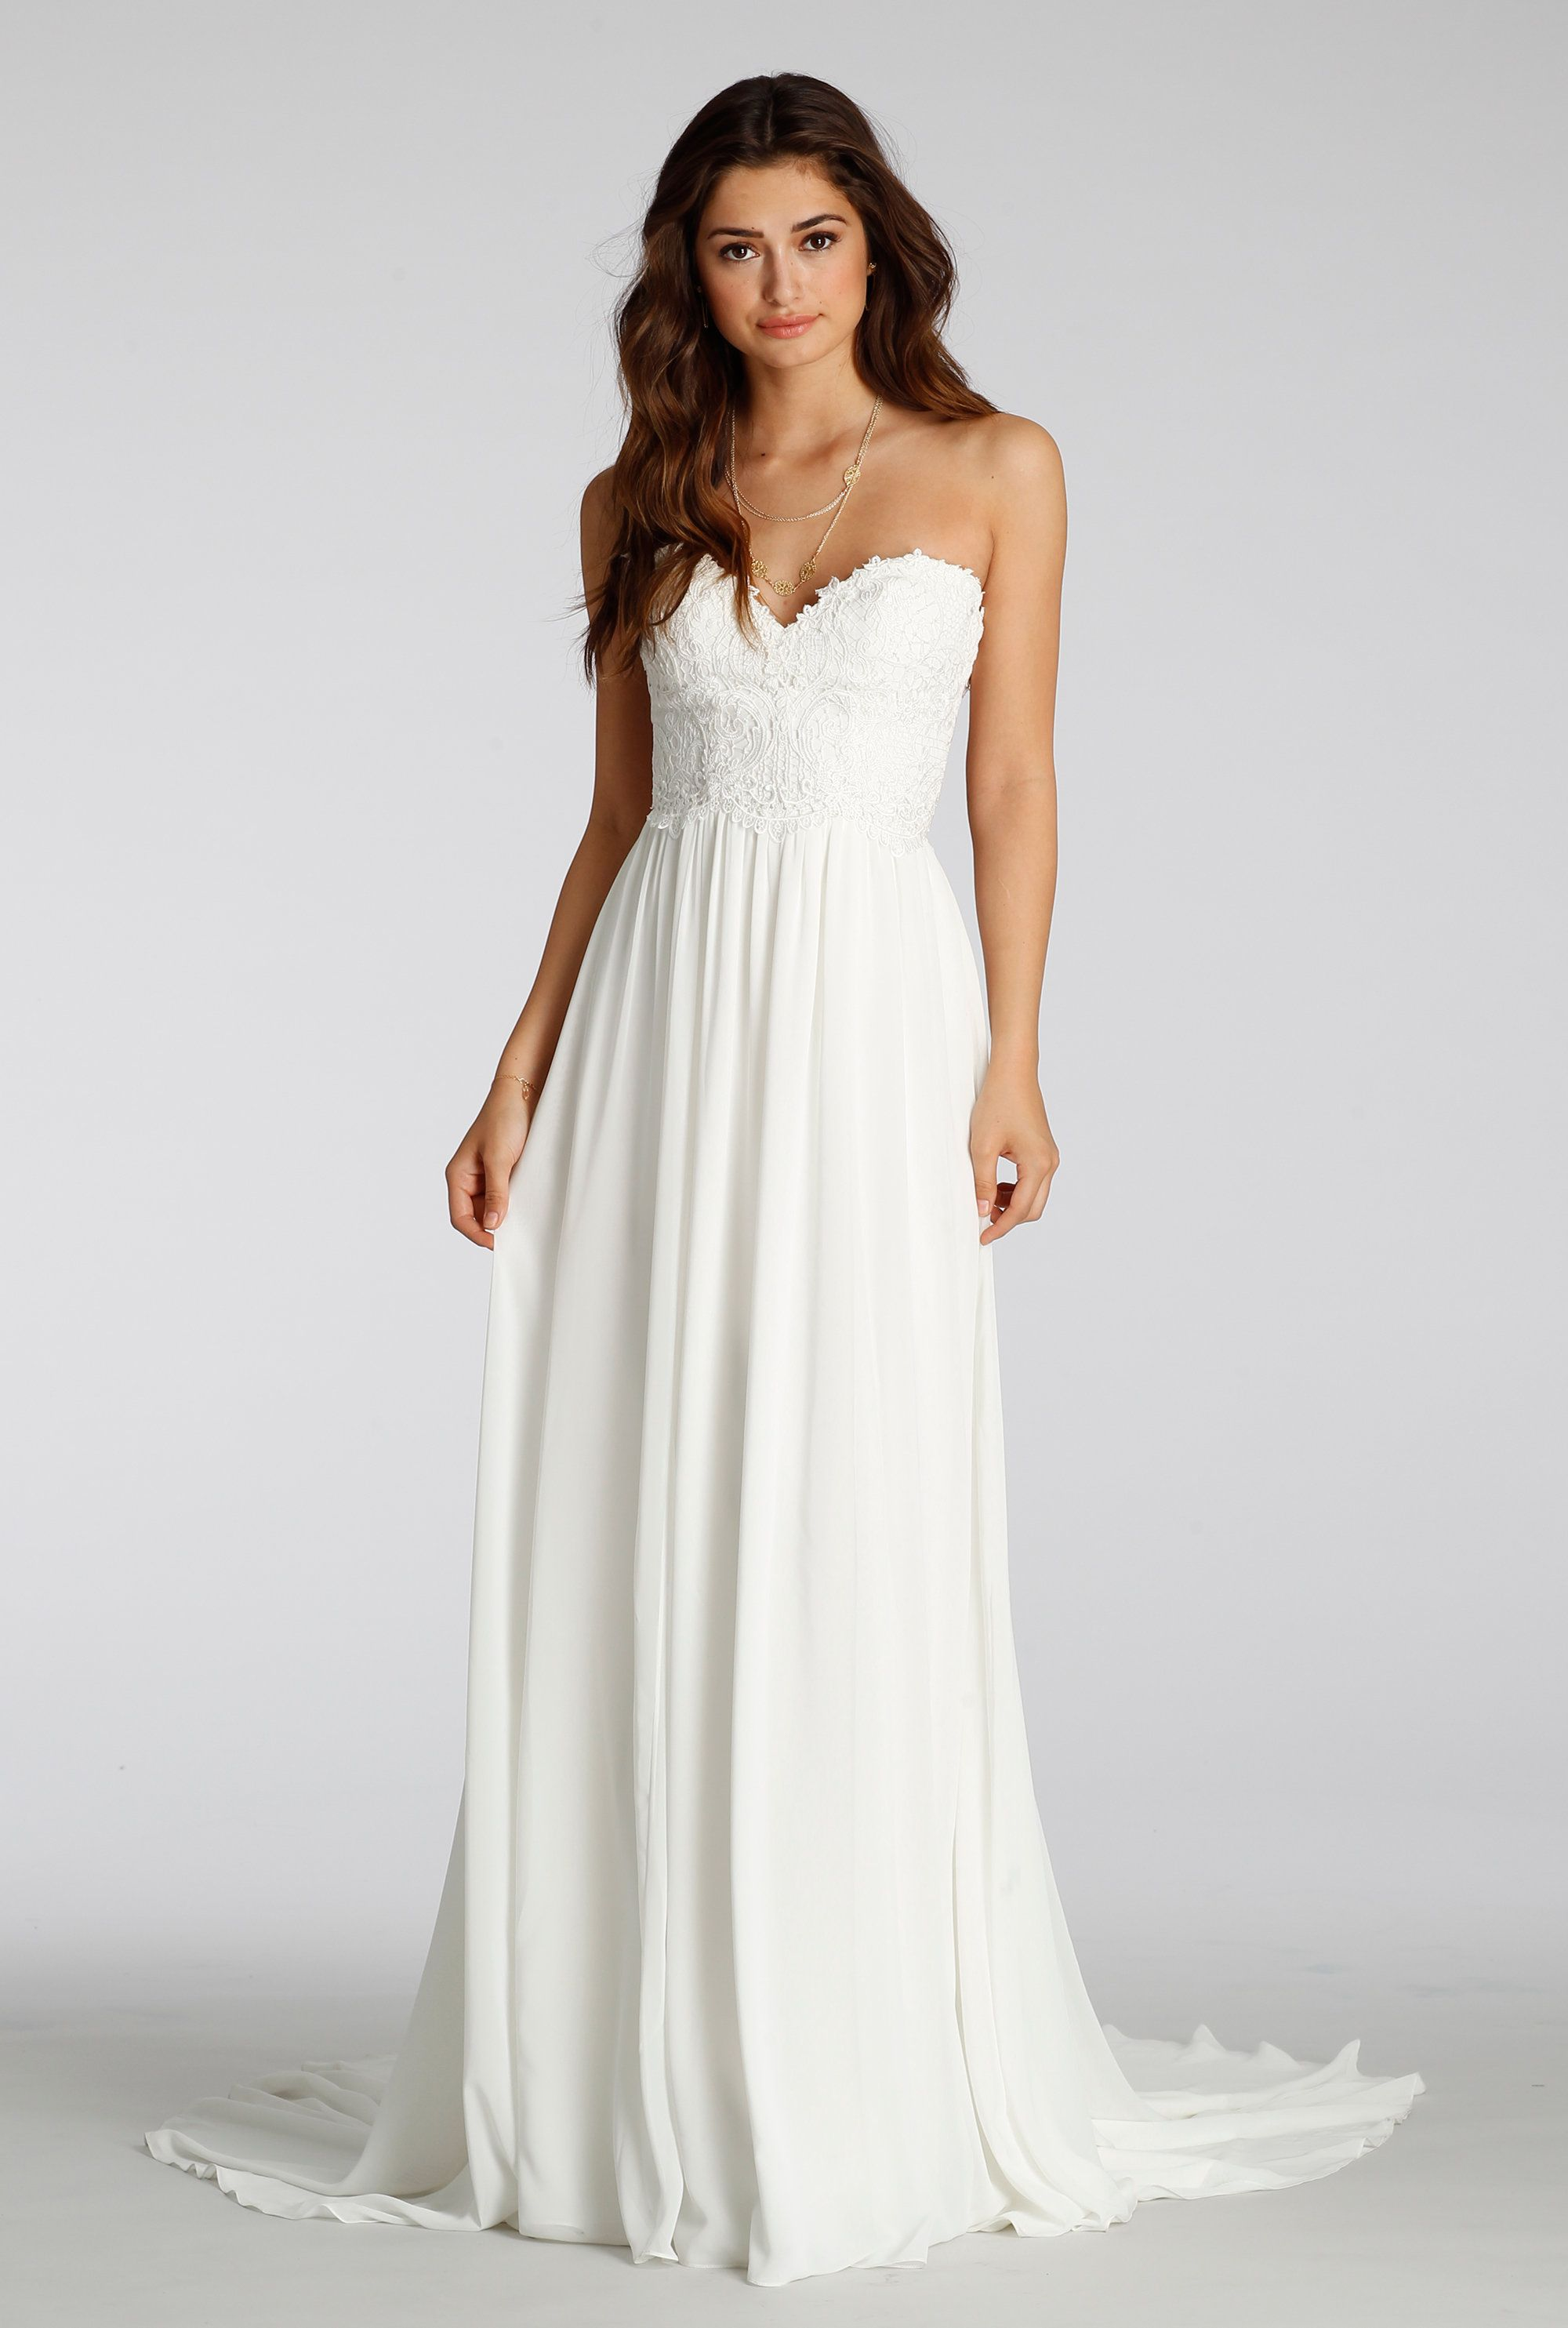 7657 | Ti Adora by Allison Webb | Available at Lulu\'s Bridal ...